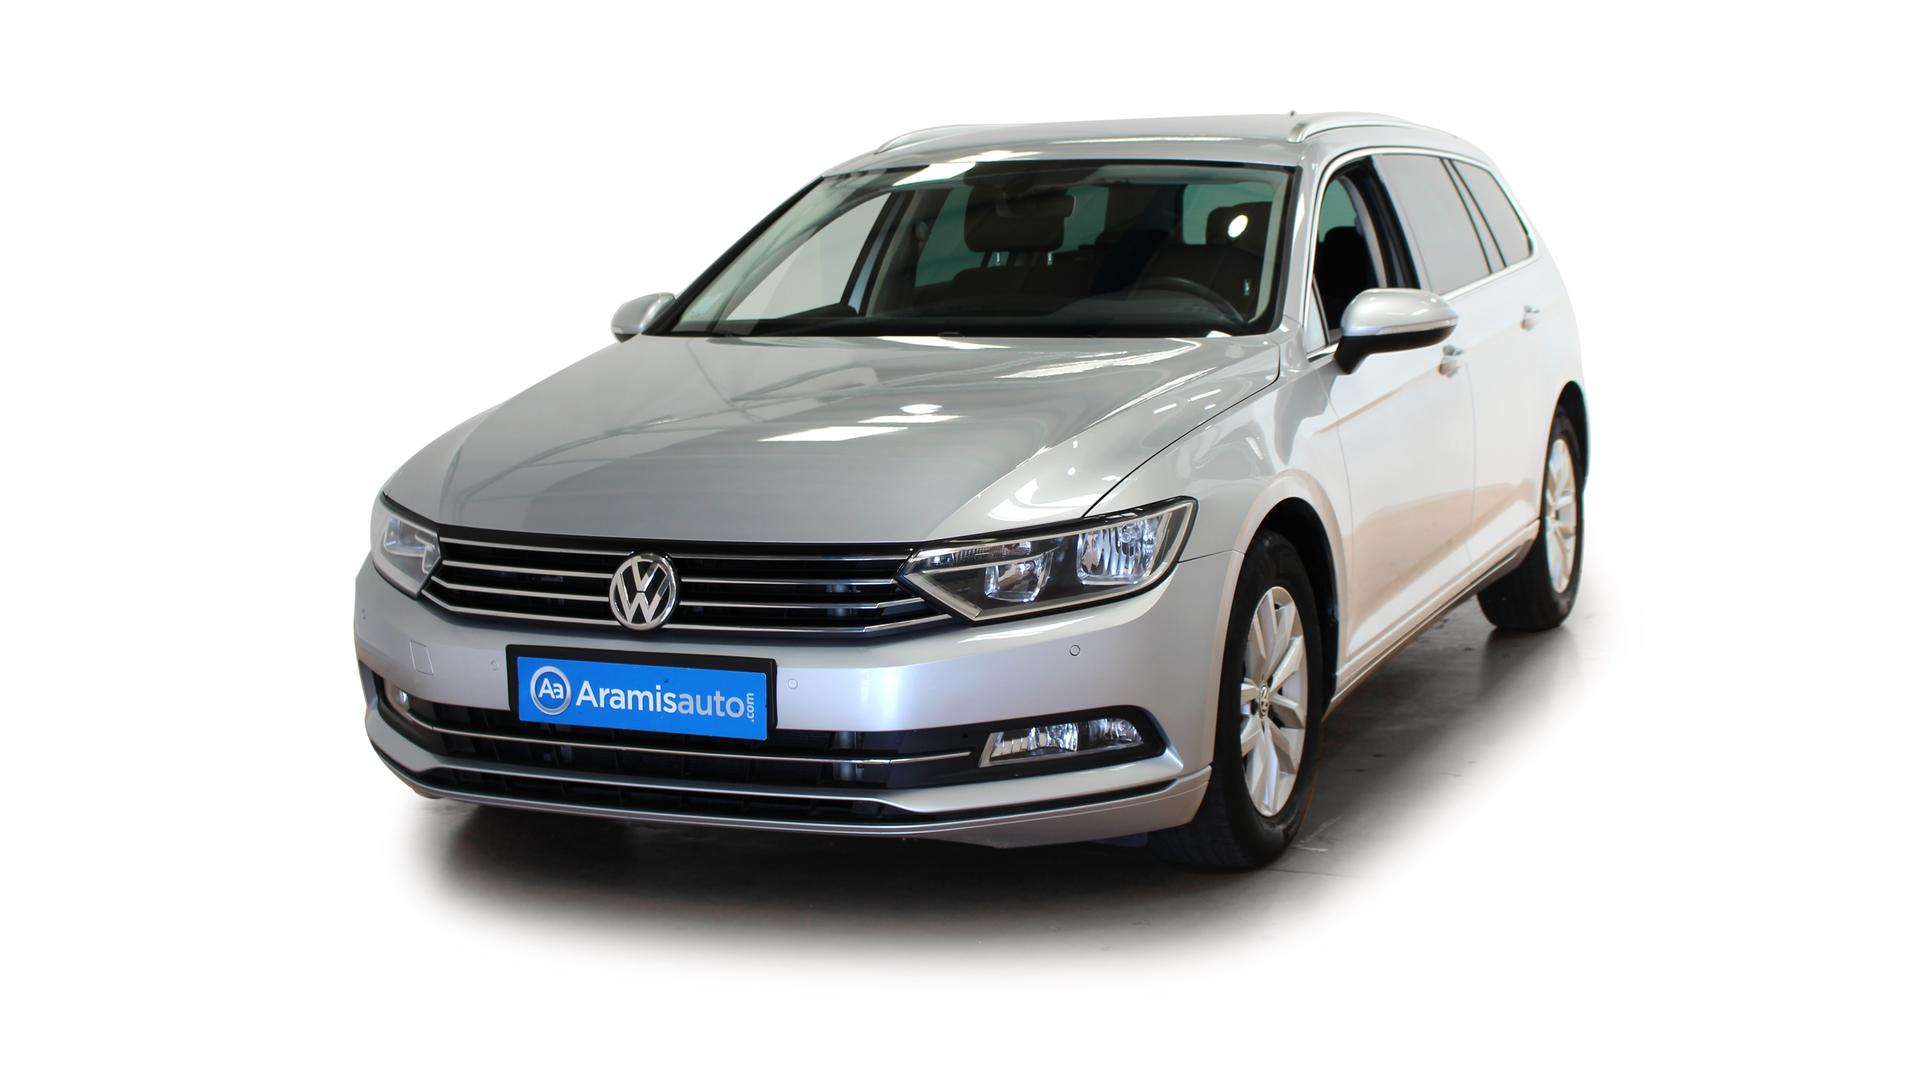 volkswagen passat sw nouvelle break 5 portes diesel 2 0 tdi 150 dsg6 bo te automatique. Black Bedroom Furniture Sets. Home Design Ideas